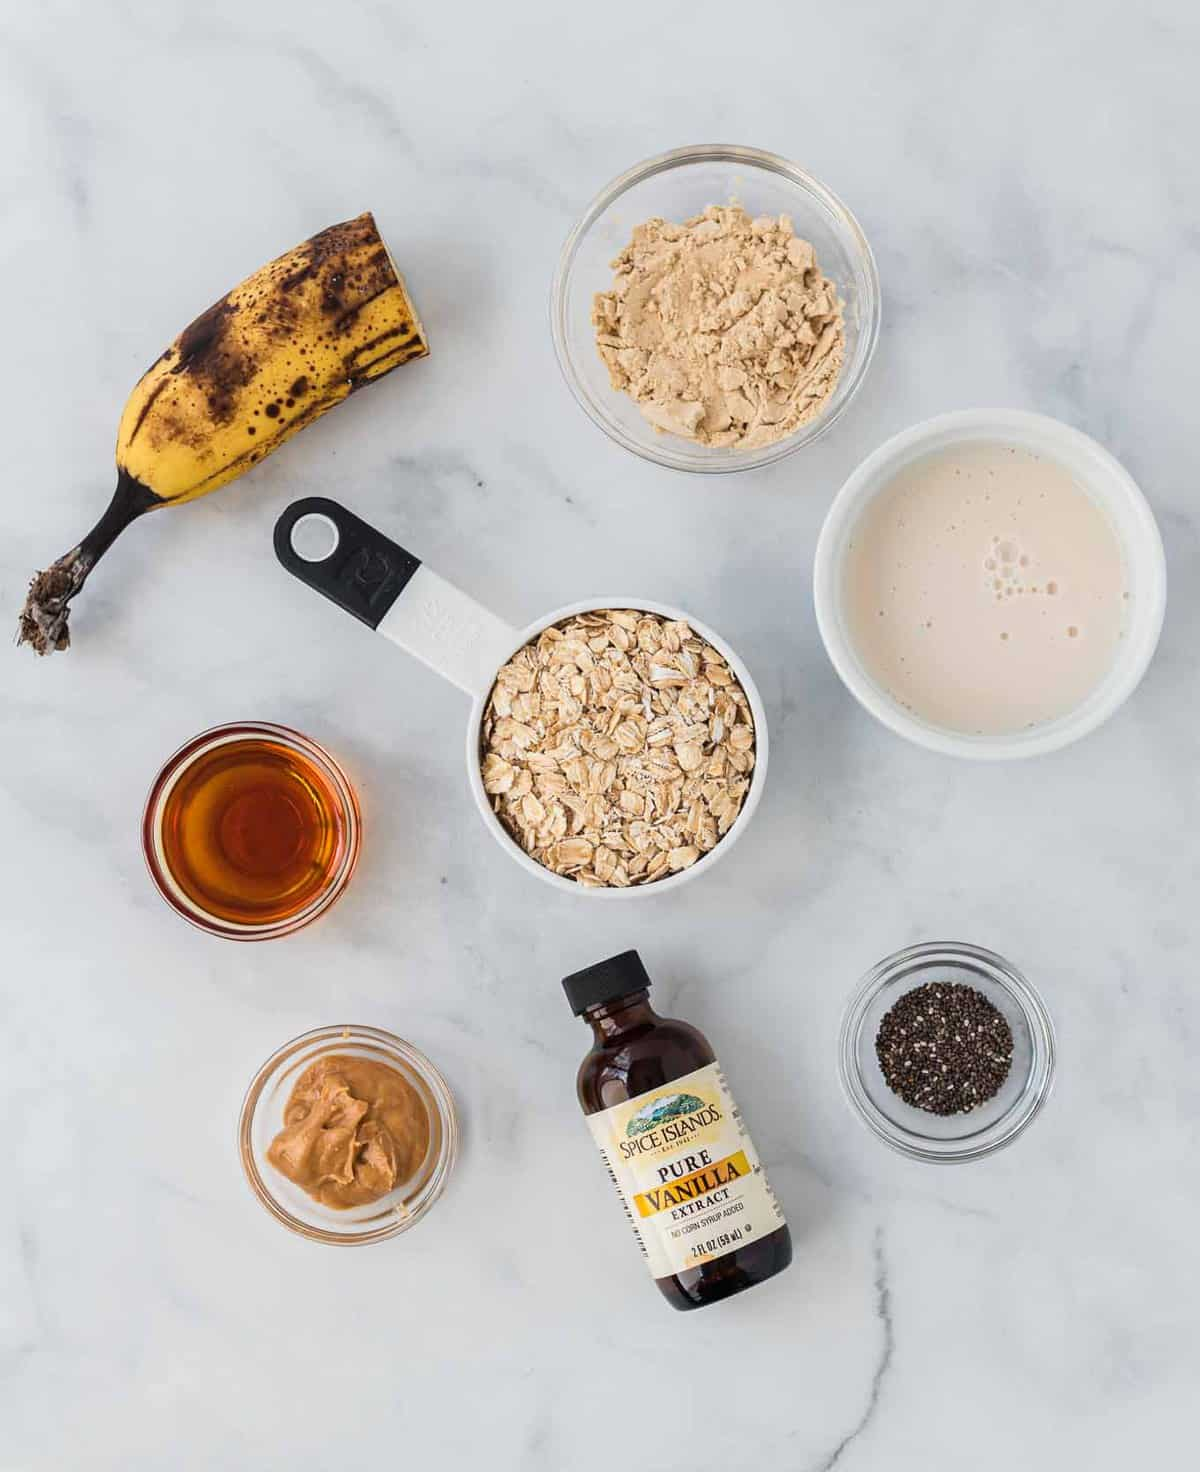 ingredients for overnight oats laid out on a marble background